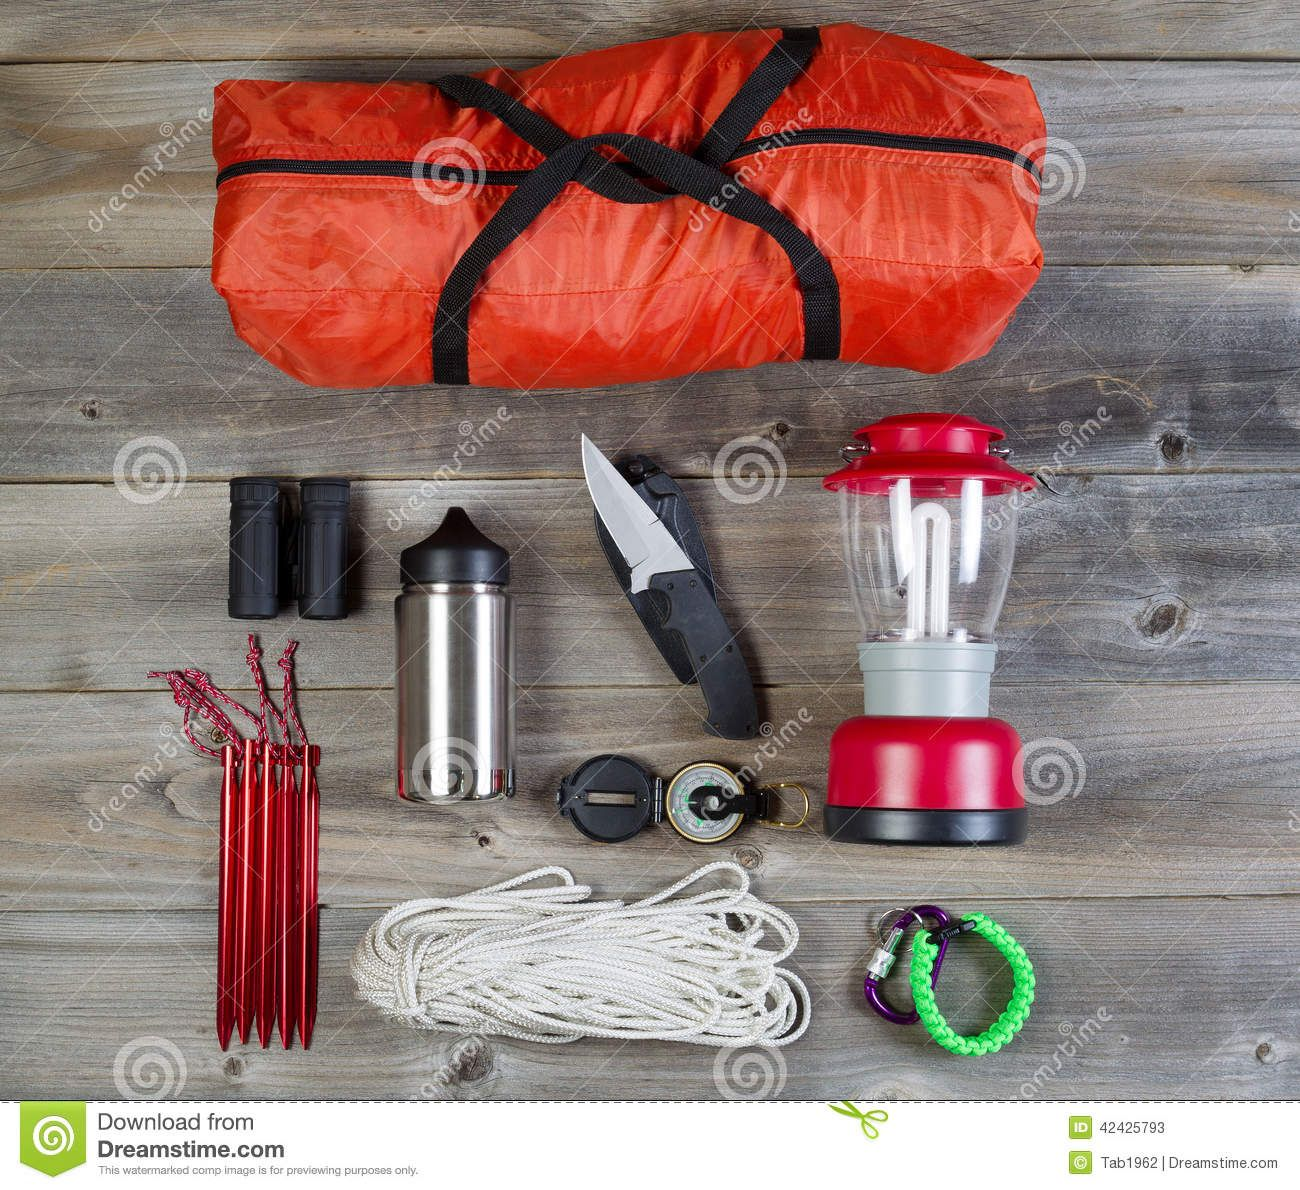 Check Out Basic Camping Equipment By Tigerpix Images On Creative Market